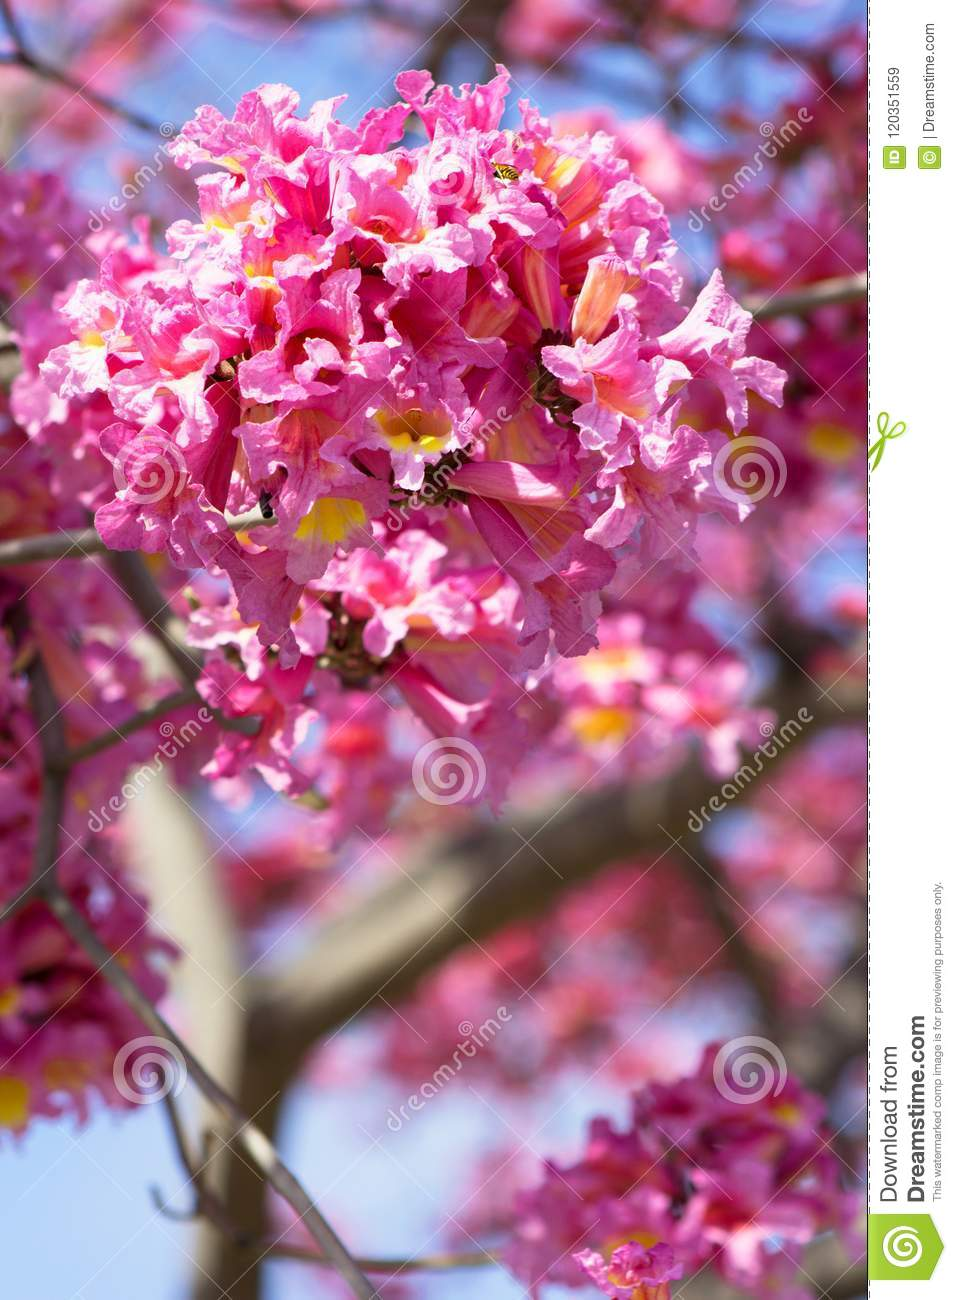 Vibrant Pink And Yellow Trumpet Shaped Flowers In The Tabebuia Tree